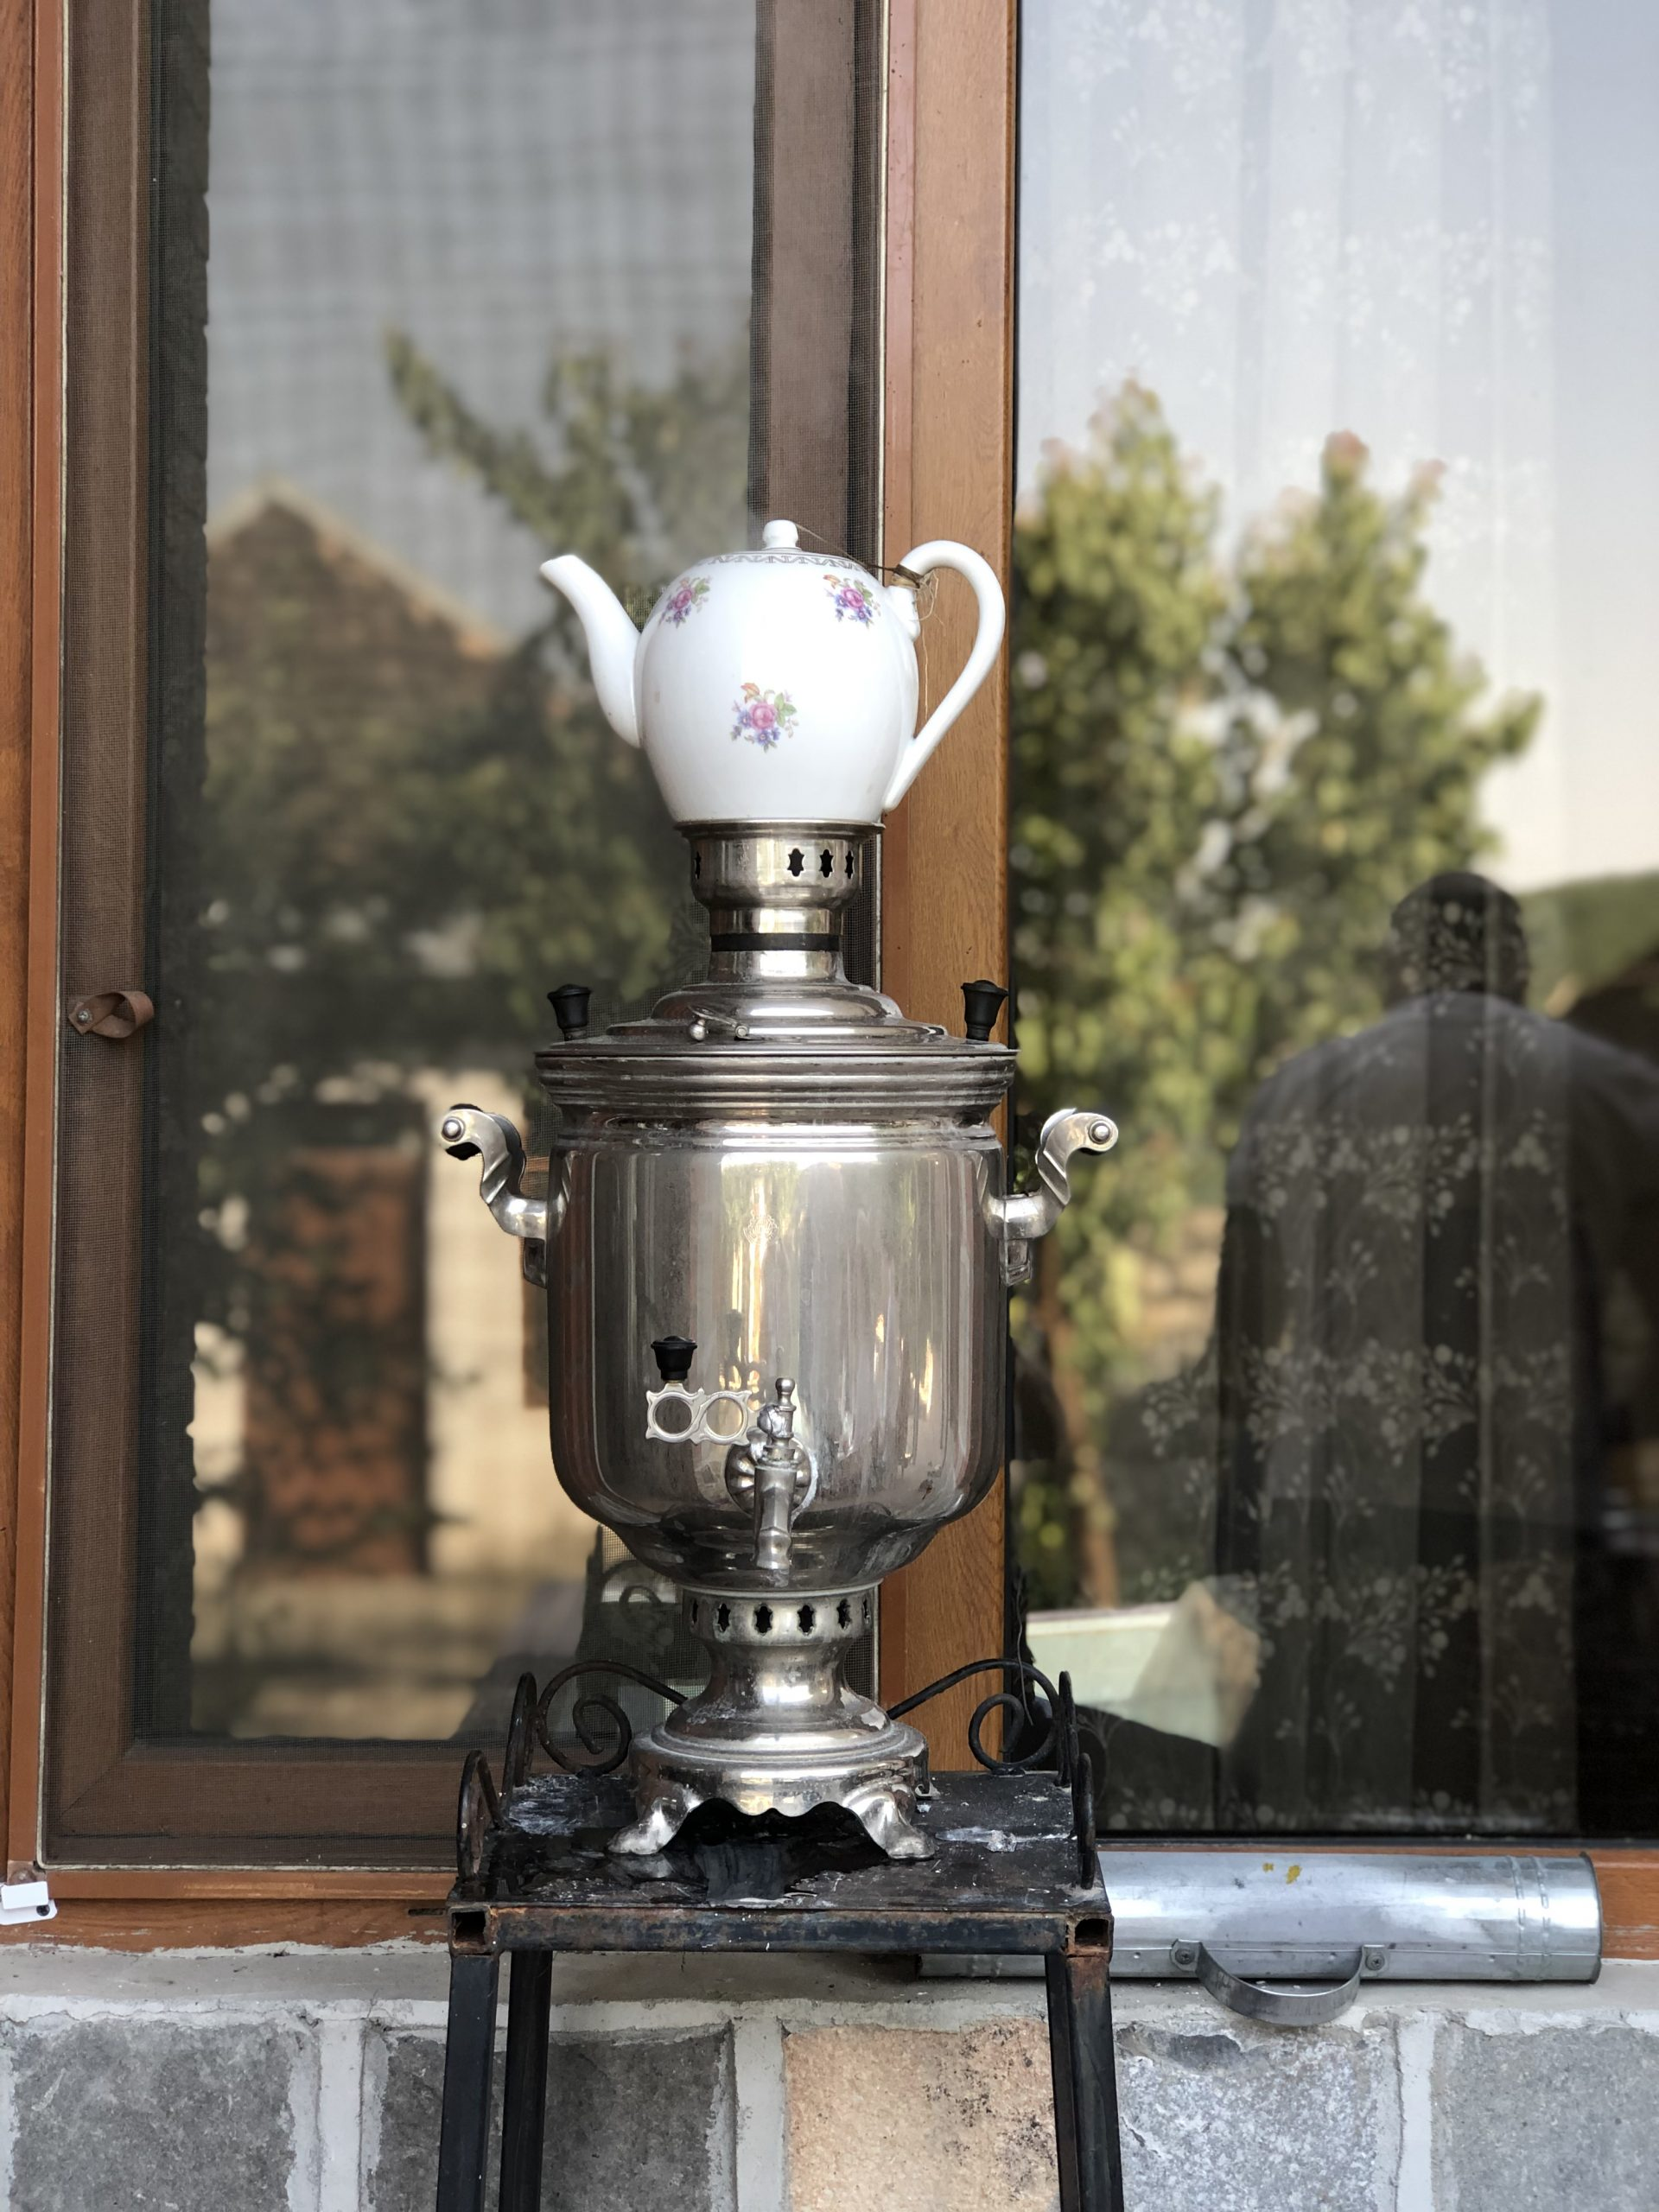 Tea from samovar in Sheki, Azerbaijan | Feride Buyuran Tours